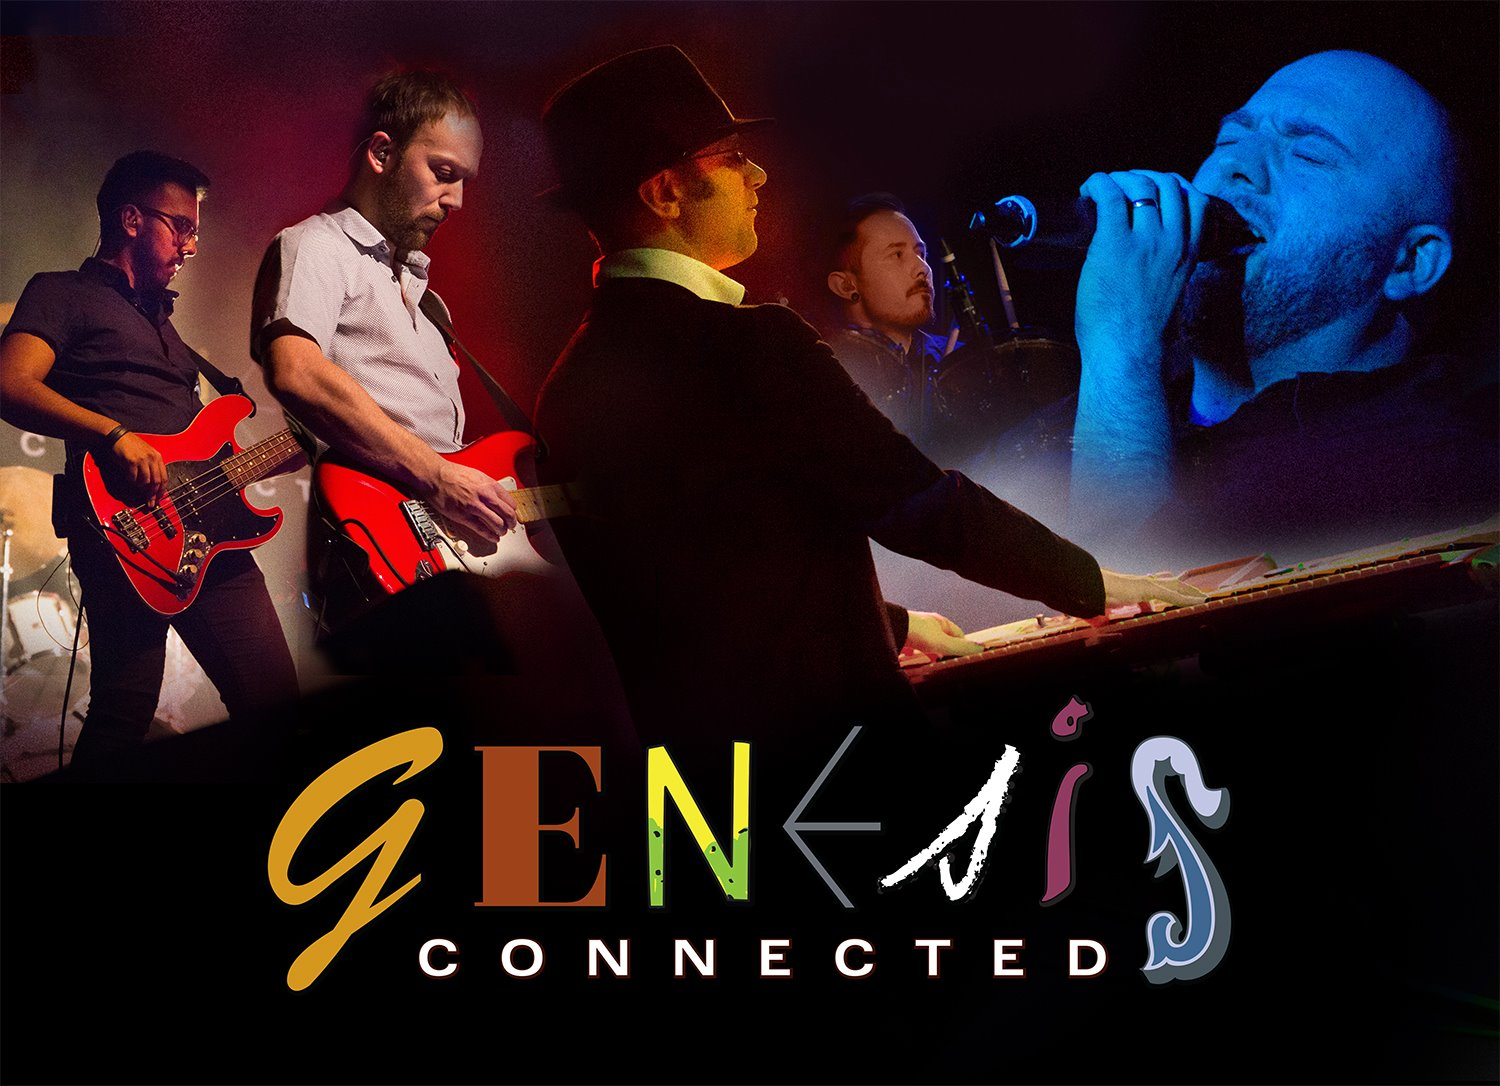 Genisis Connected